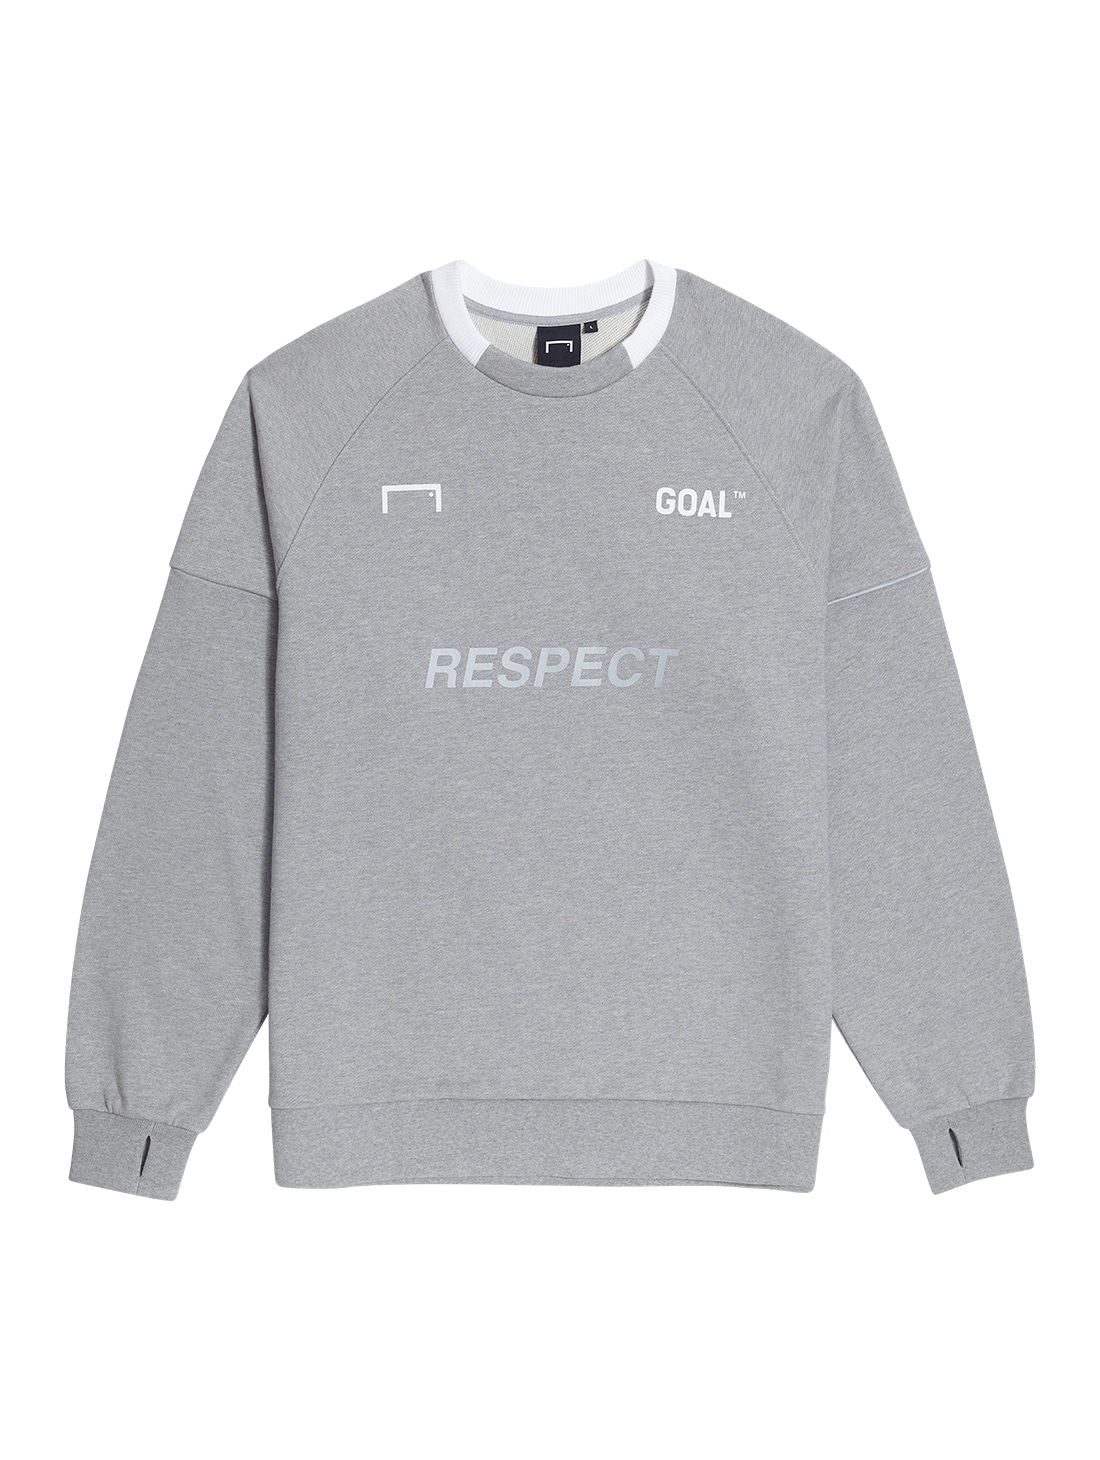 RESPECT SWEATSHIRT - GRAY